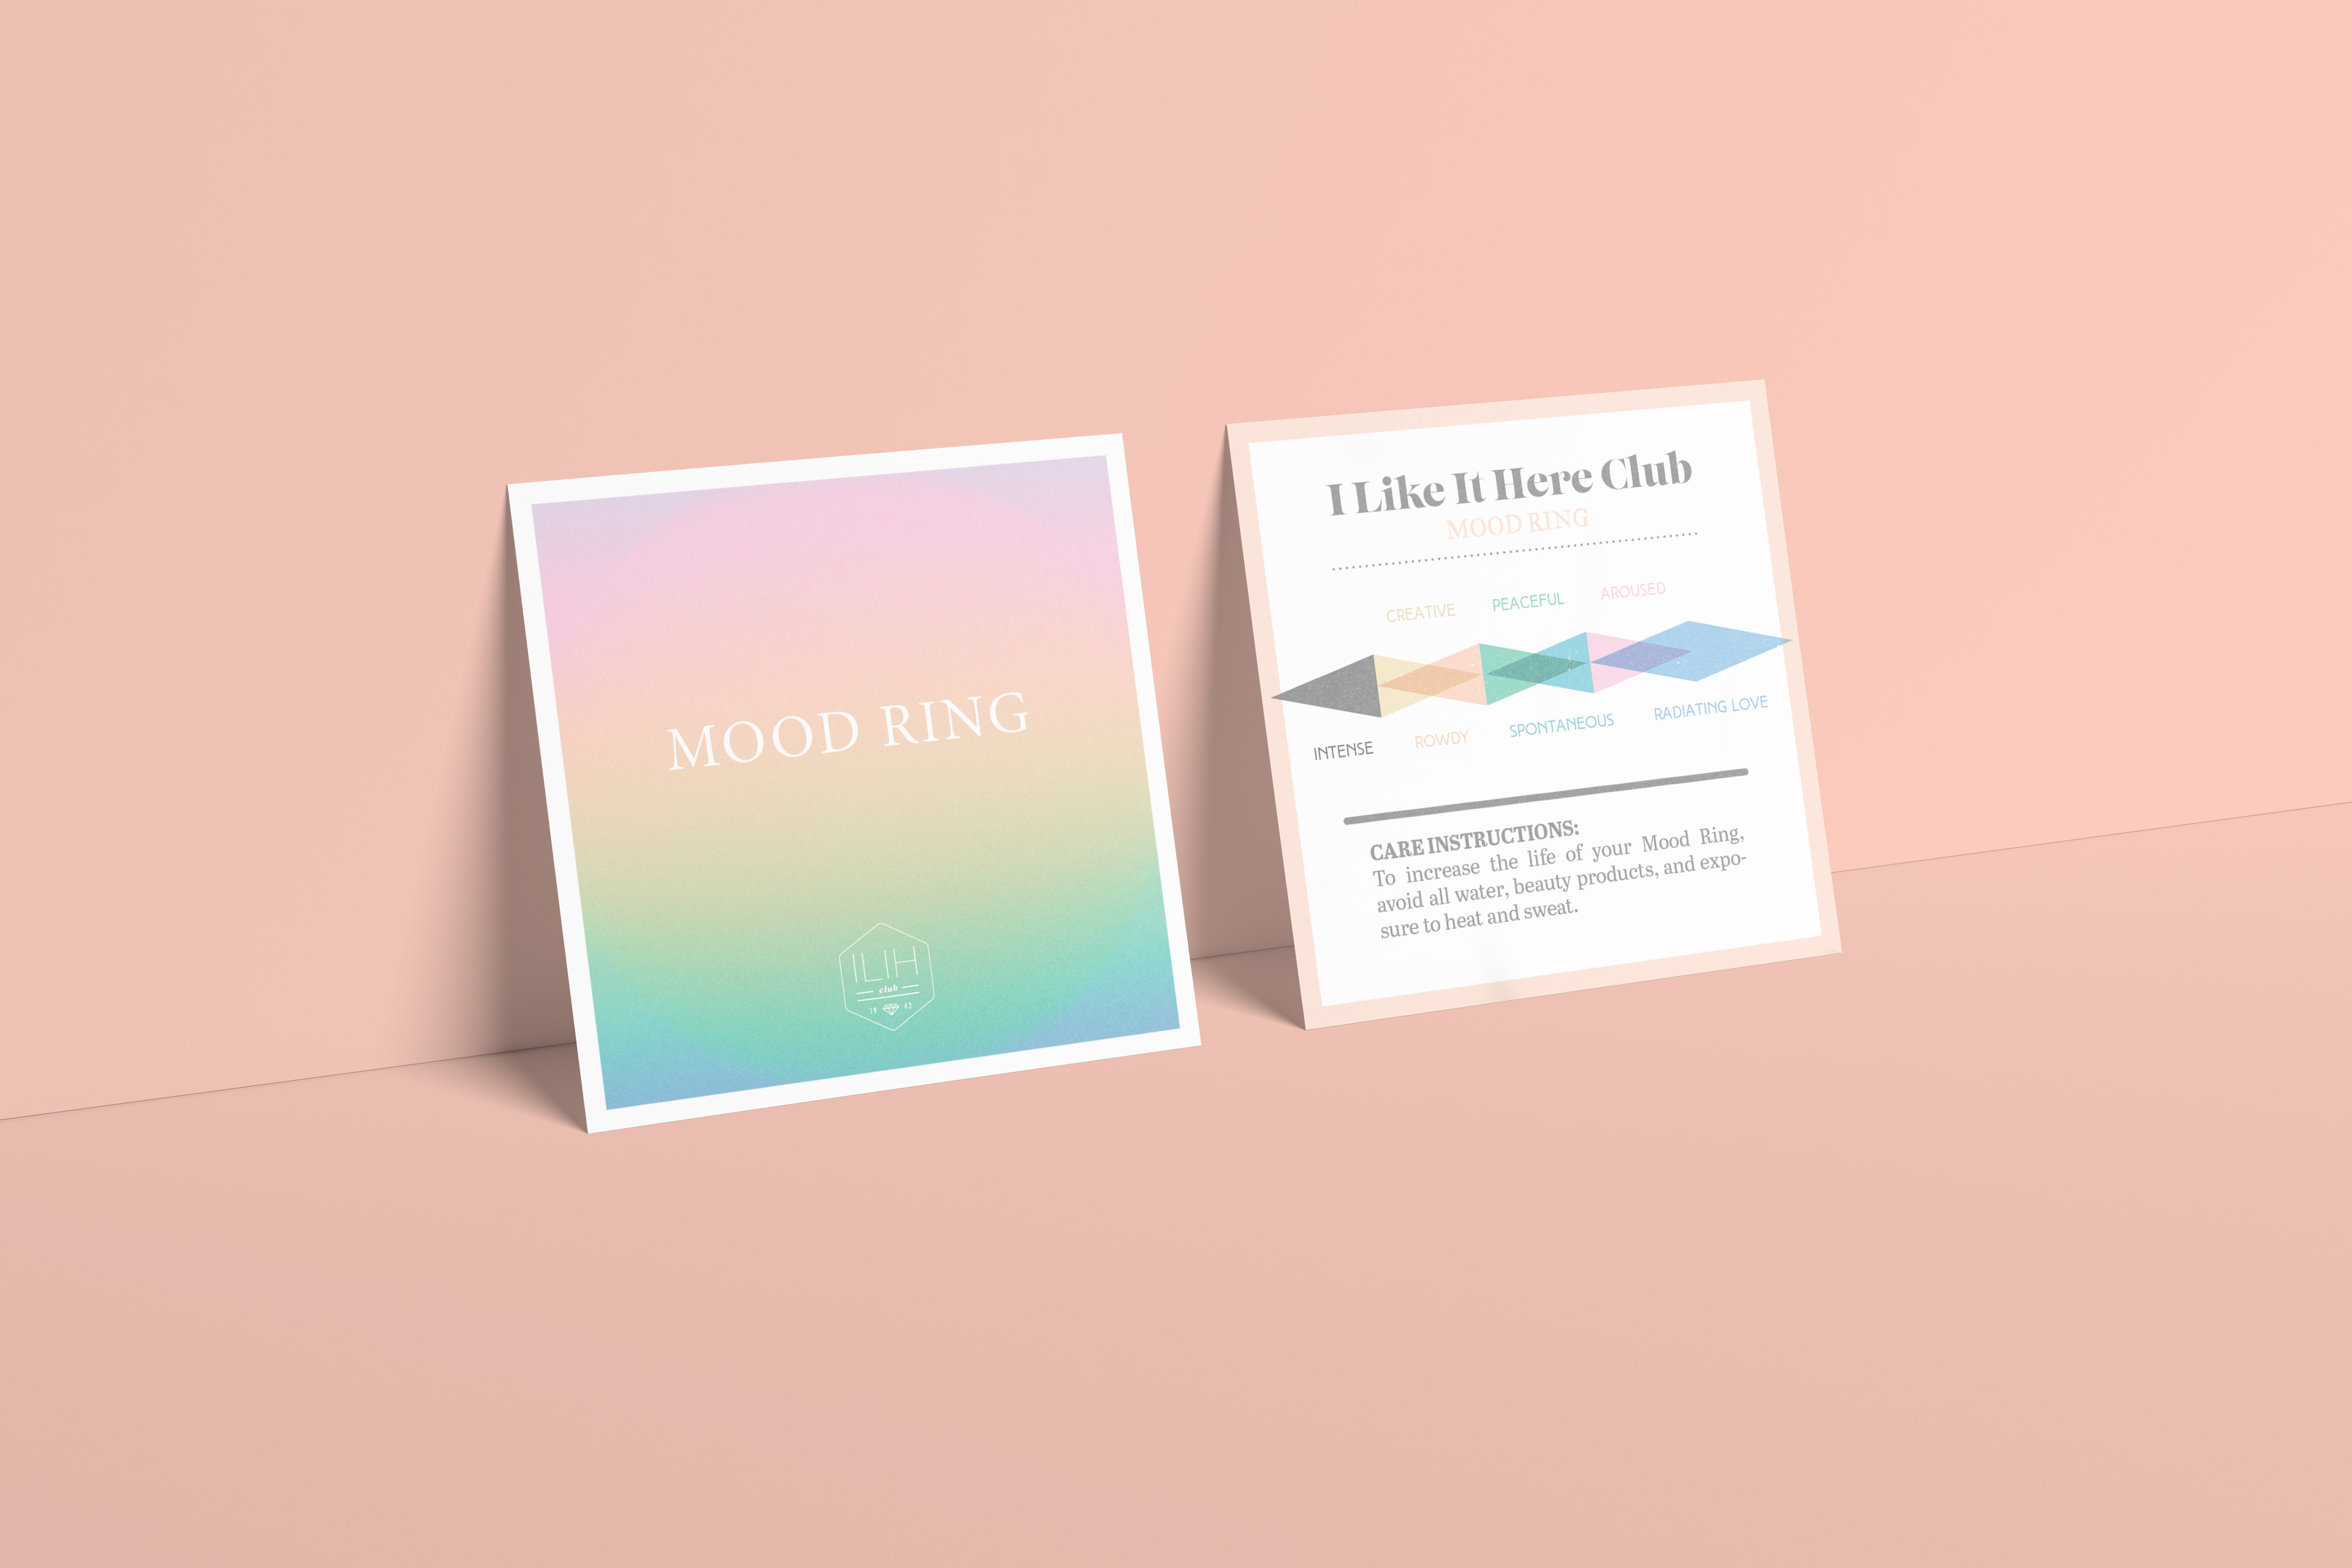 Brand Engine Creative Branding Agency - Care Card Design for I Like It Here Club